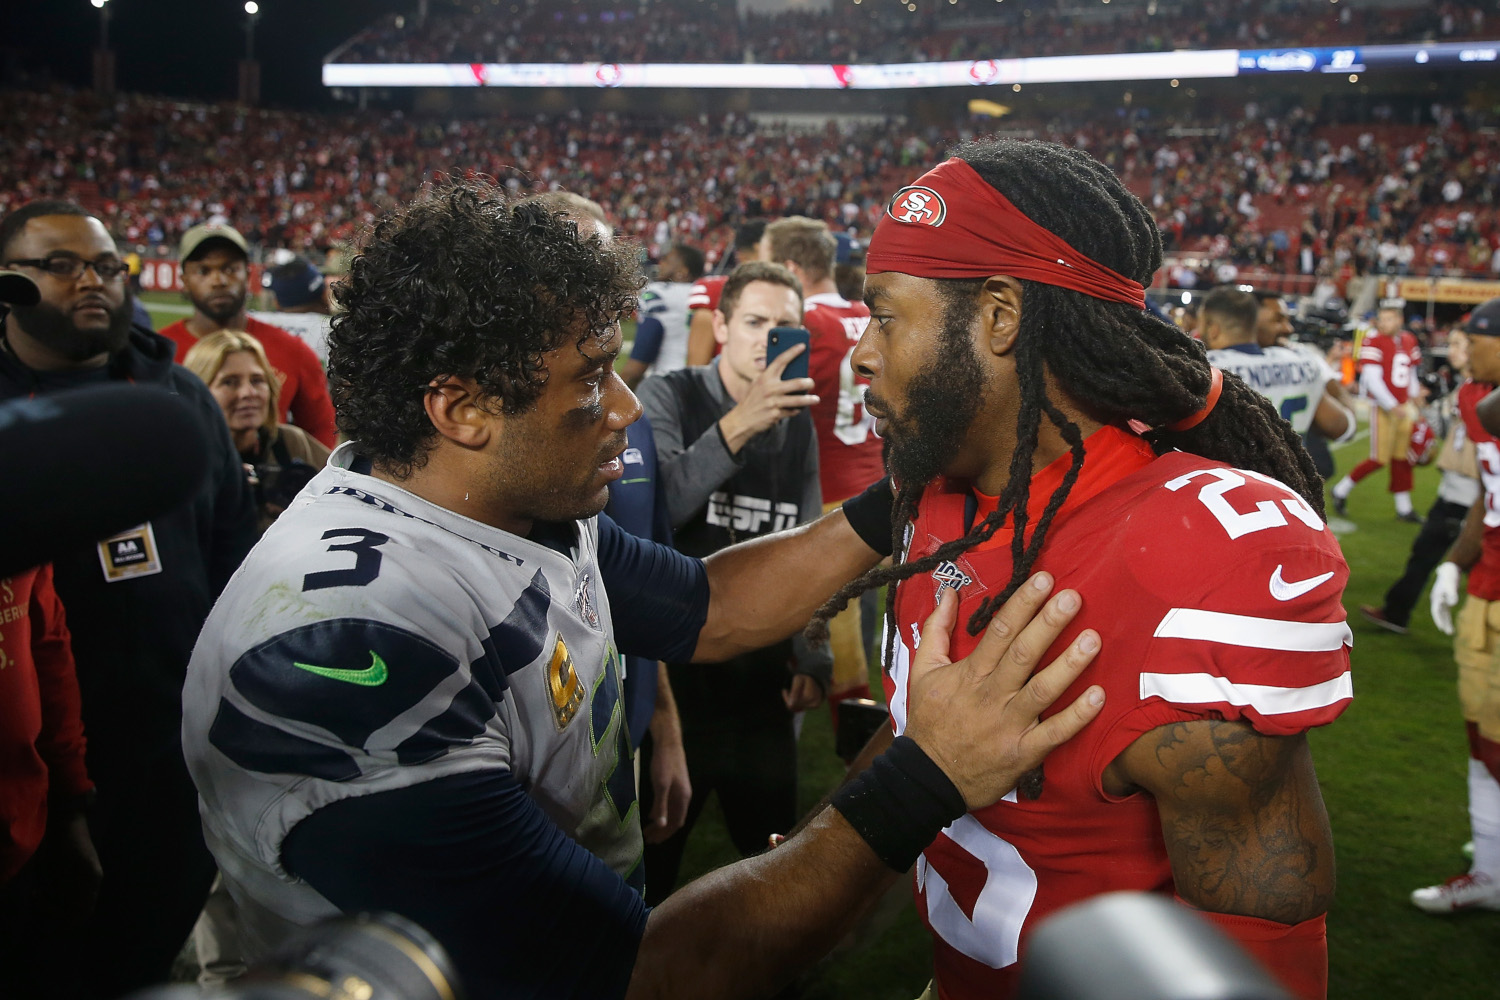 Russell Wilson of the Seattle Seahawks and Richard Sherman of the San Francisco 49ers